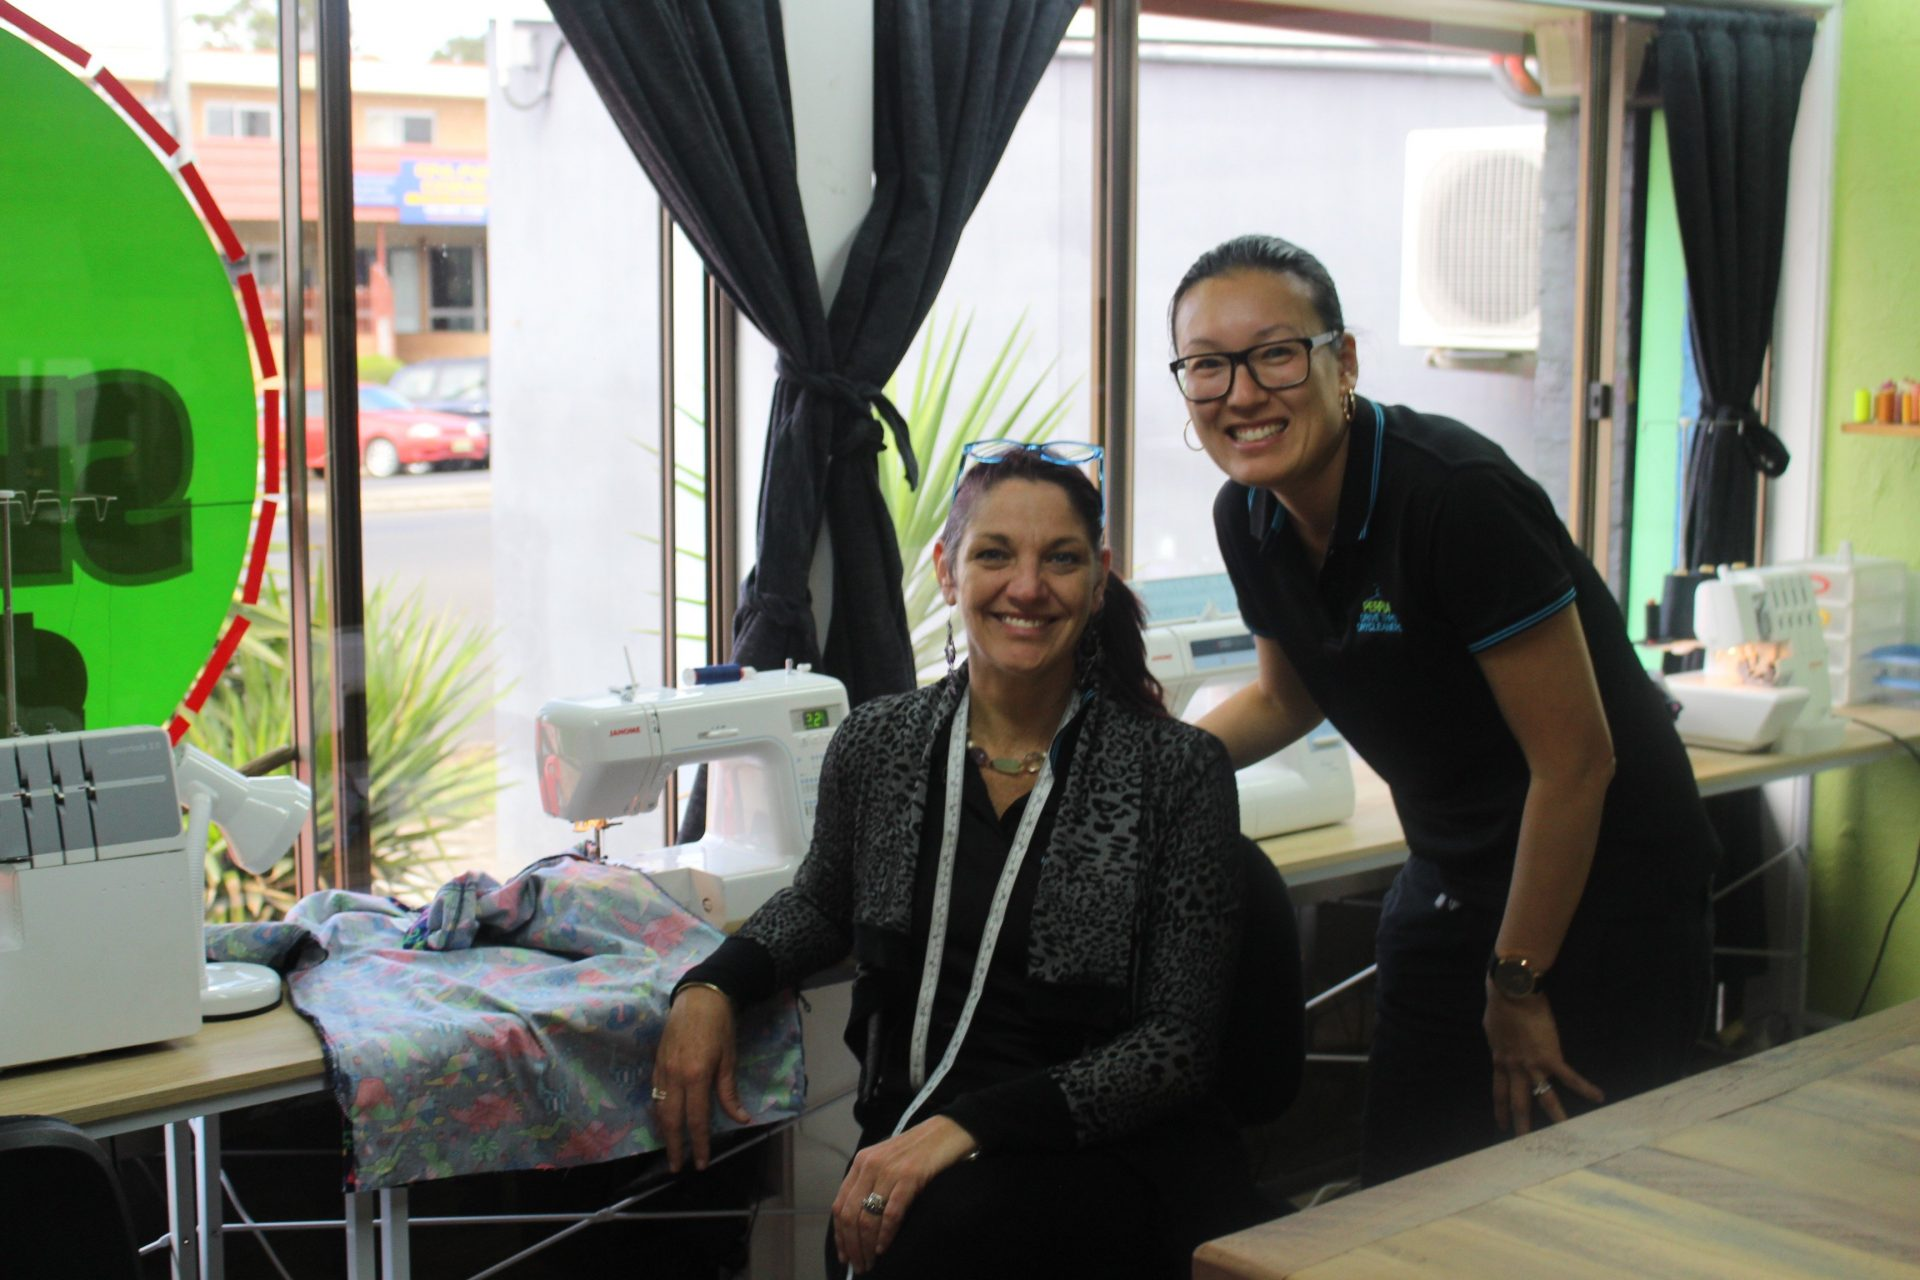 Alterations - Perfix Drycleaners Lismore